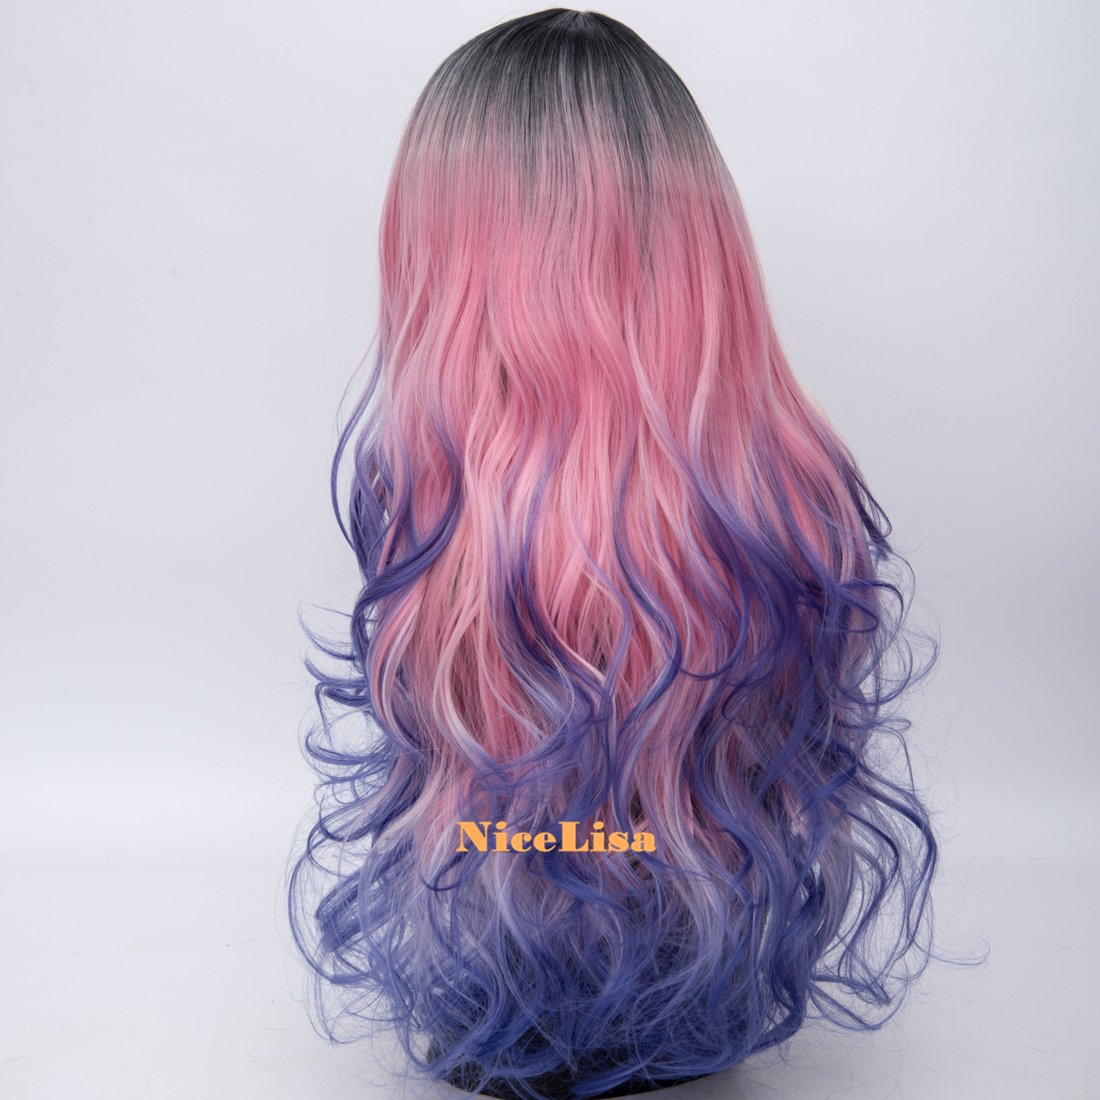 Amazon.com : NiceLisa Womens Long Natural Wave Mermaid Braids Rainbow Dark Roots Cosplay Costume Party Wig : Beauty